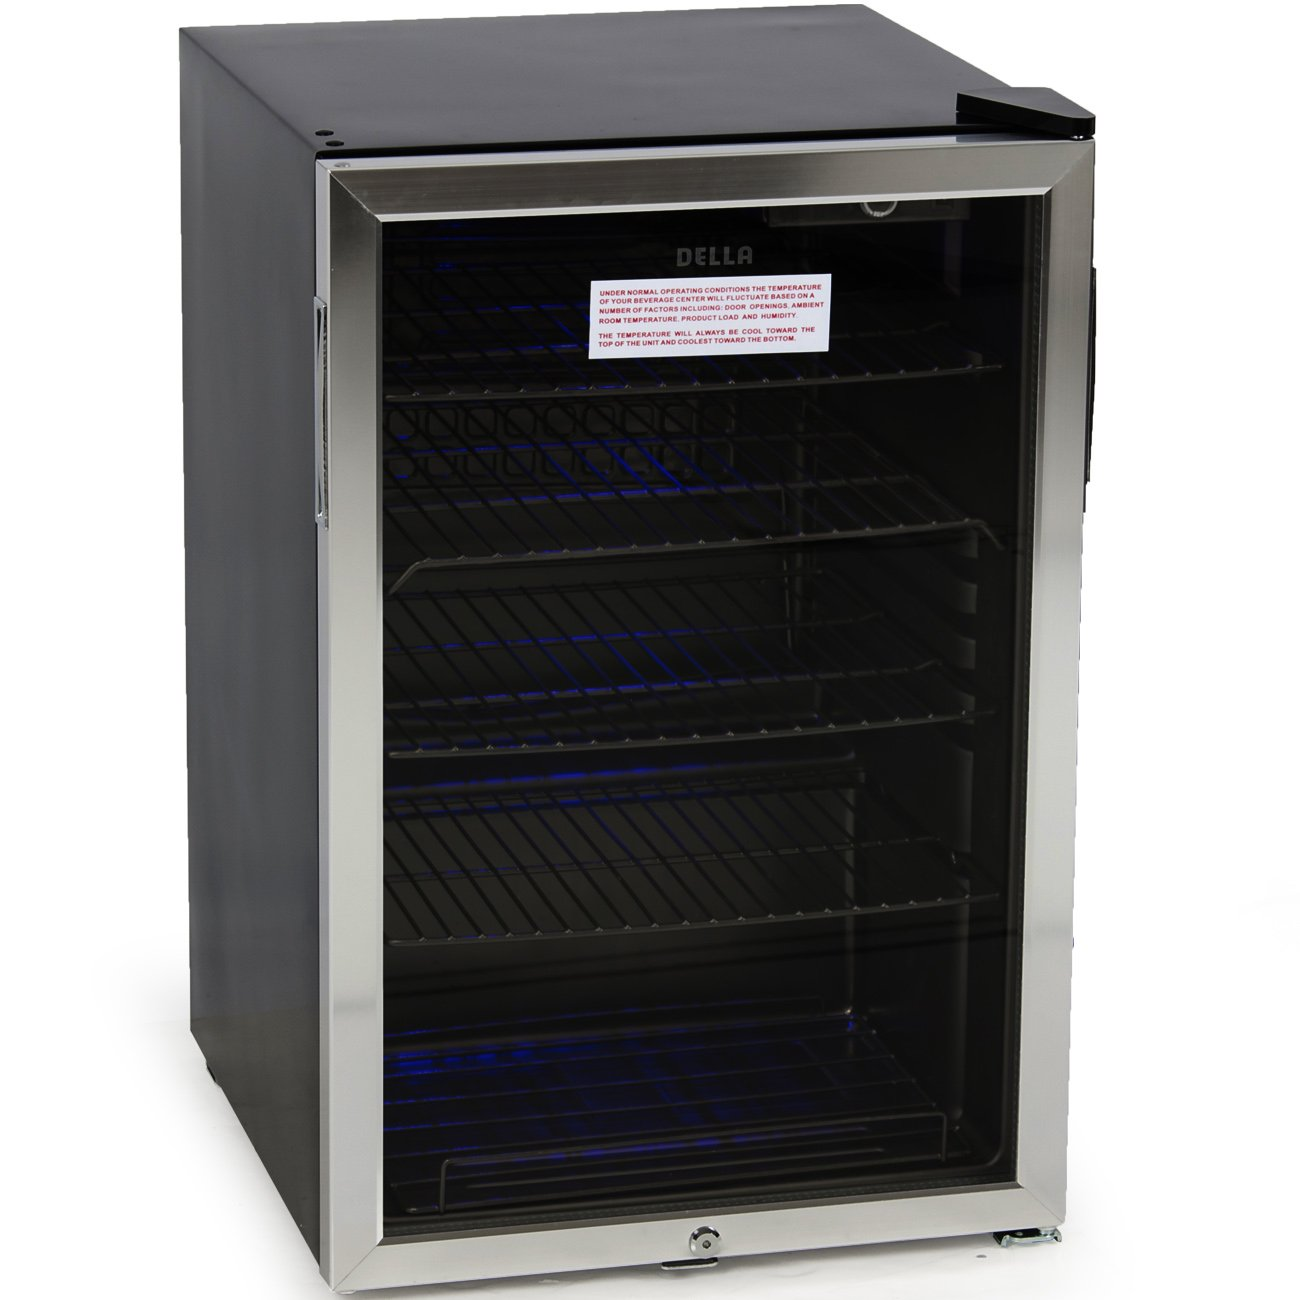 DELLA 048-GM-48197 Beverage Center Cool Built-In Cooler Mini Refrigerator w/ Lock- Black/Stainless Steel